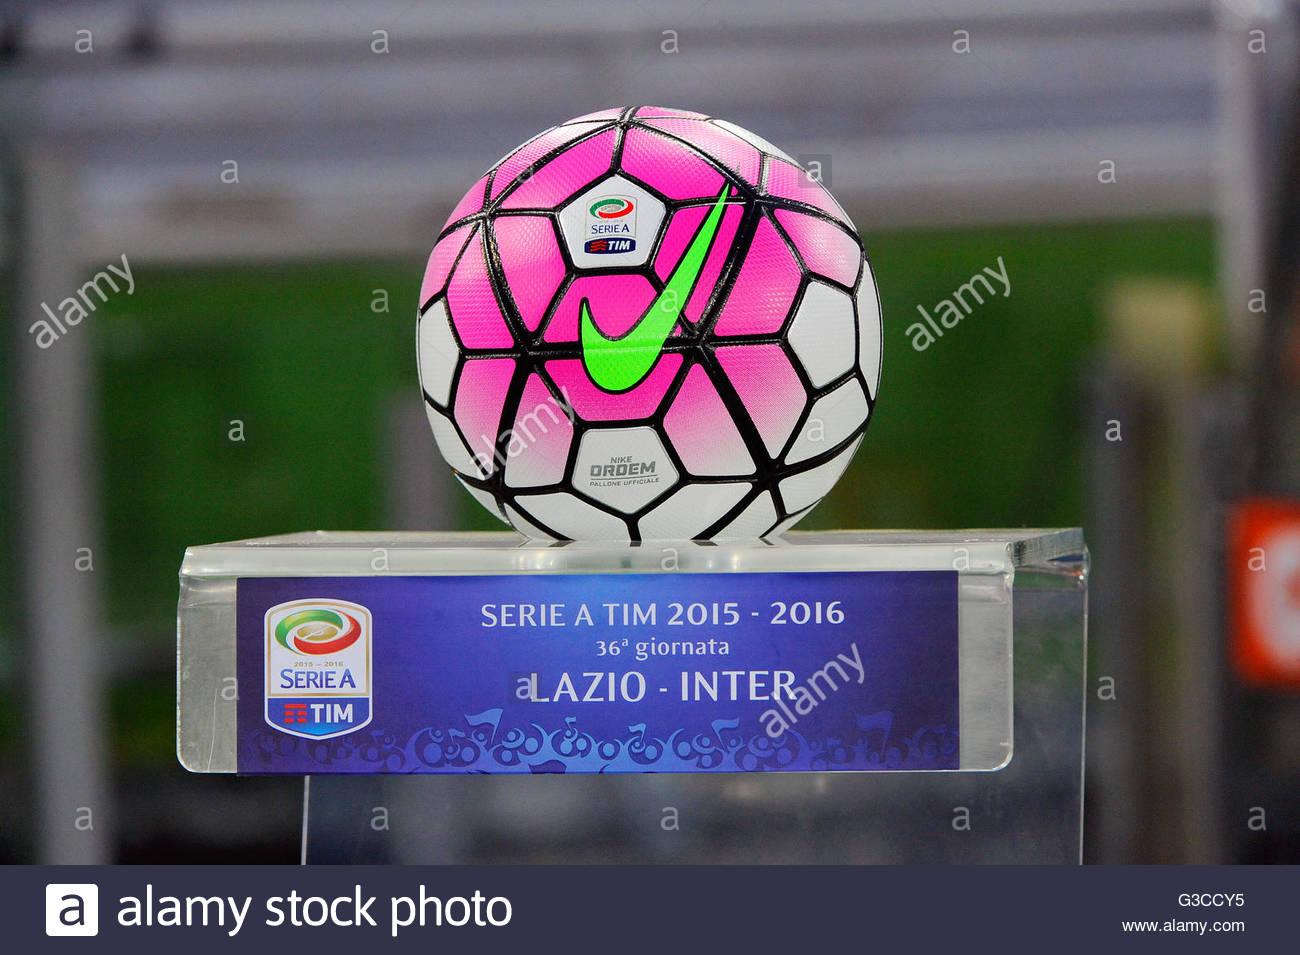 balloon official match S.S. Lazio vs Inter,the football championship series in May 1,2016 Rome Olympic Stadium - Stock Image